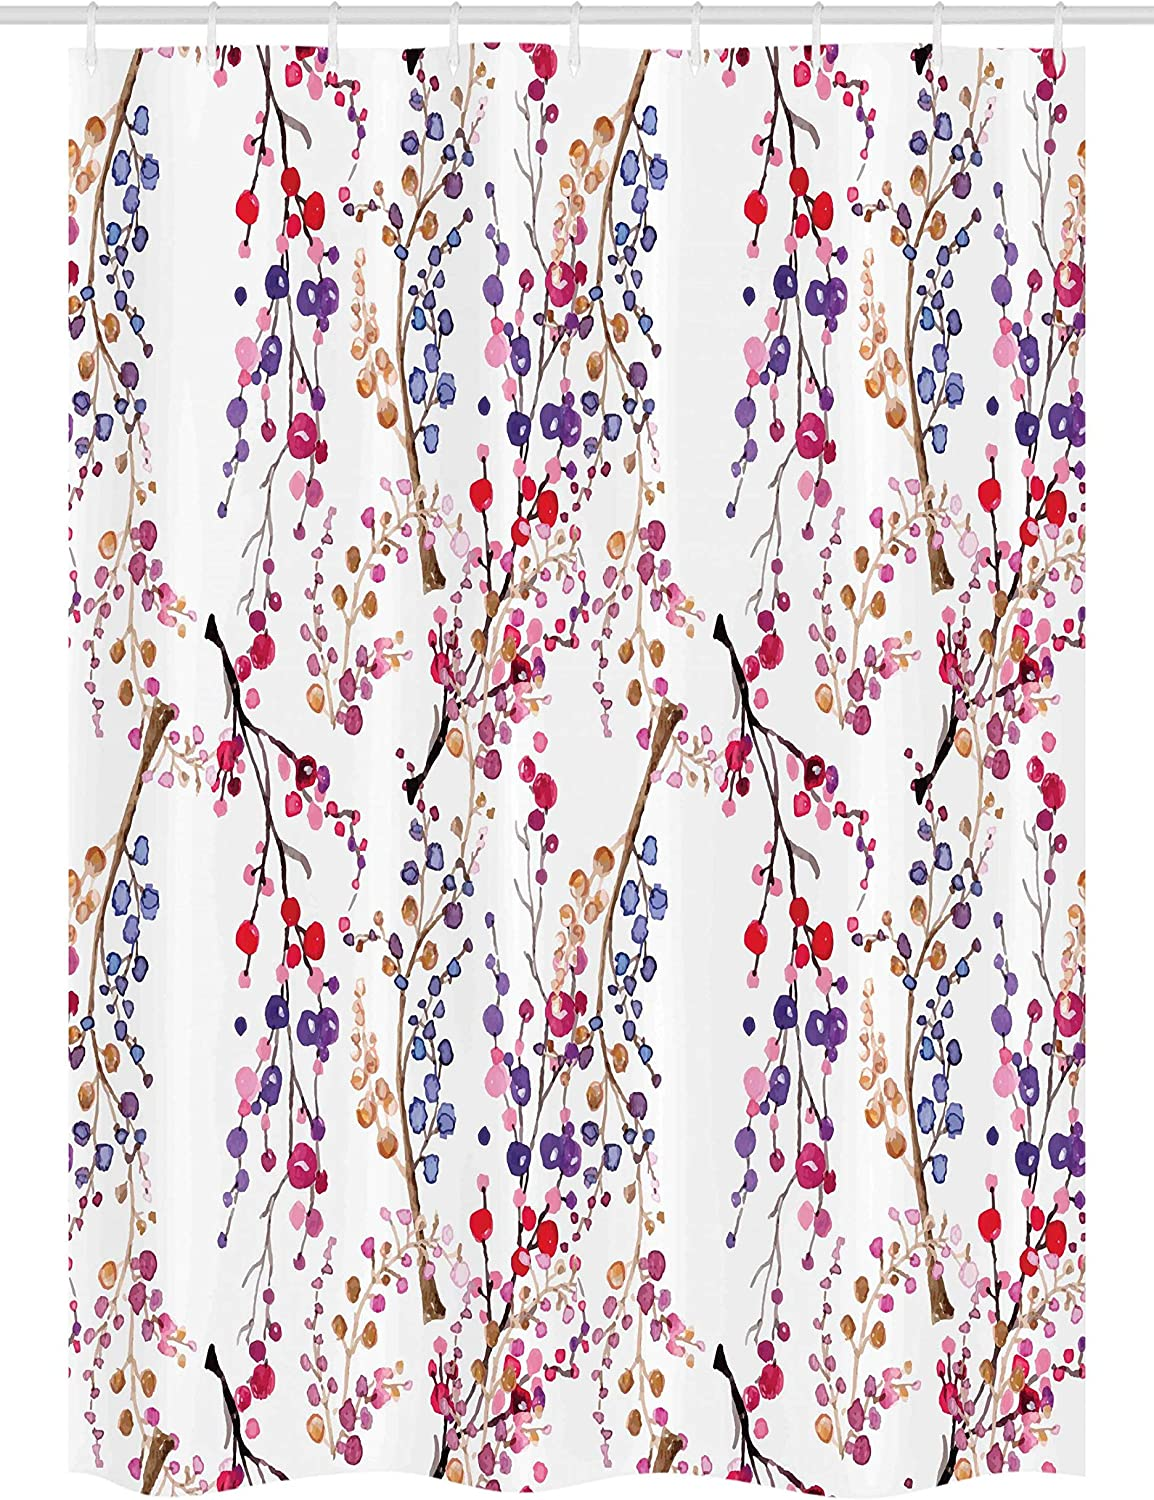 Ambesonne Watercolor Flower Stall Shower Curtain, Branches in Full Blossom Colorful Sprigs Pattern in Watercolor Art, Fabric Bathroom Decor Set with Hooks, 54